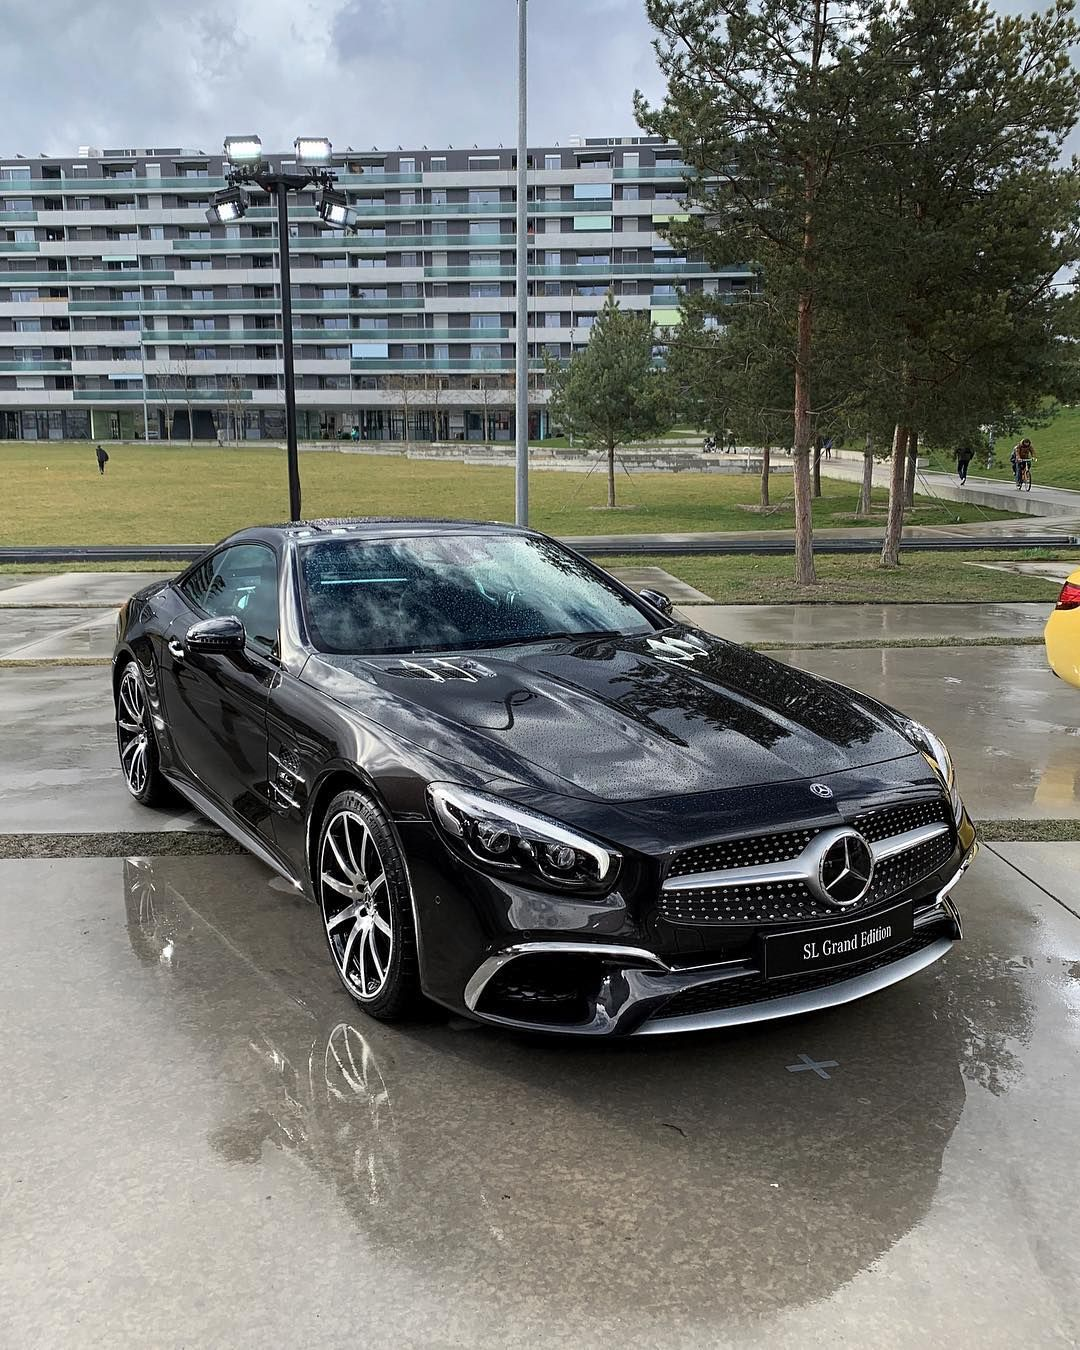 2019 Mercedes Benz Sl Grand Edition Is Its Final Year No Word On